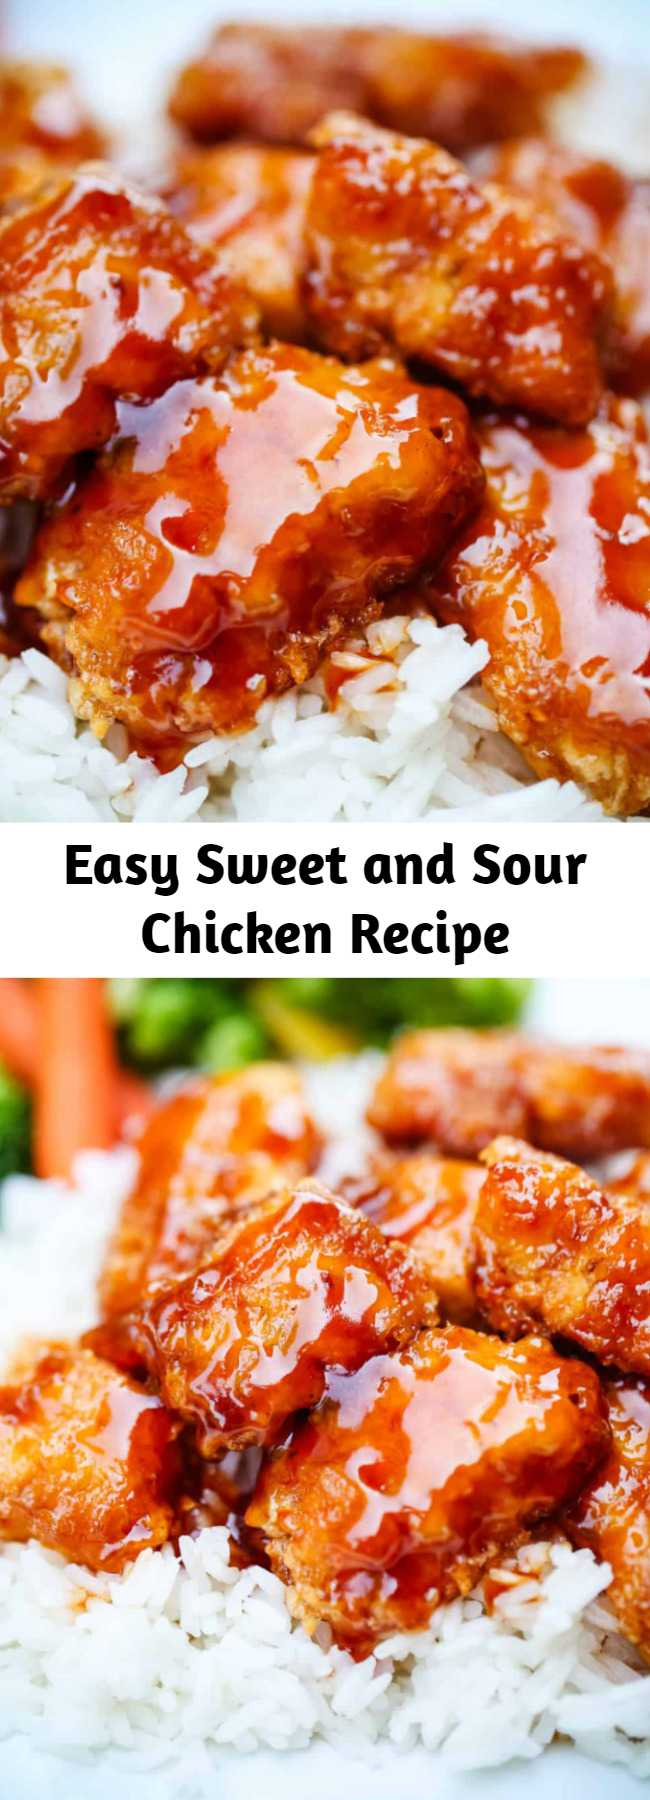 Easy Sweet and Sour Chicken Recipe - Skip the take out and make this delicious sweet and sour chicken recipe at home! The sauce is absolutely to die for. Serve with rice and fresh vegetables for the perfect dinner! #chicken #recipe #sweetandsour #sauce #baked #fried #crispy #chinese